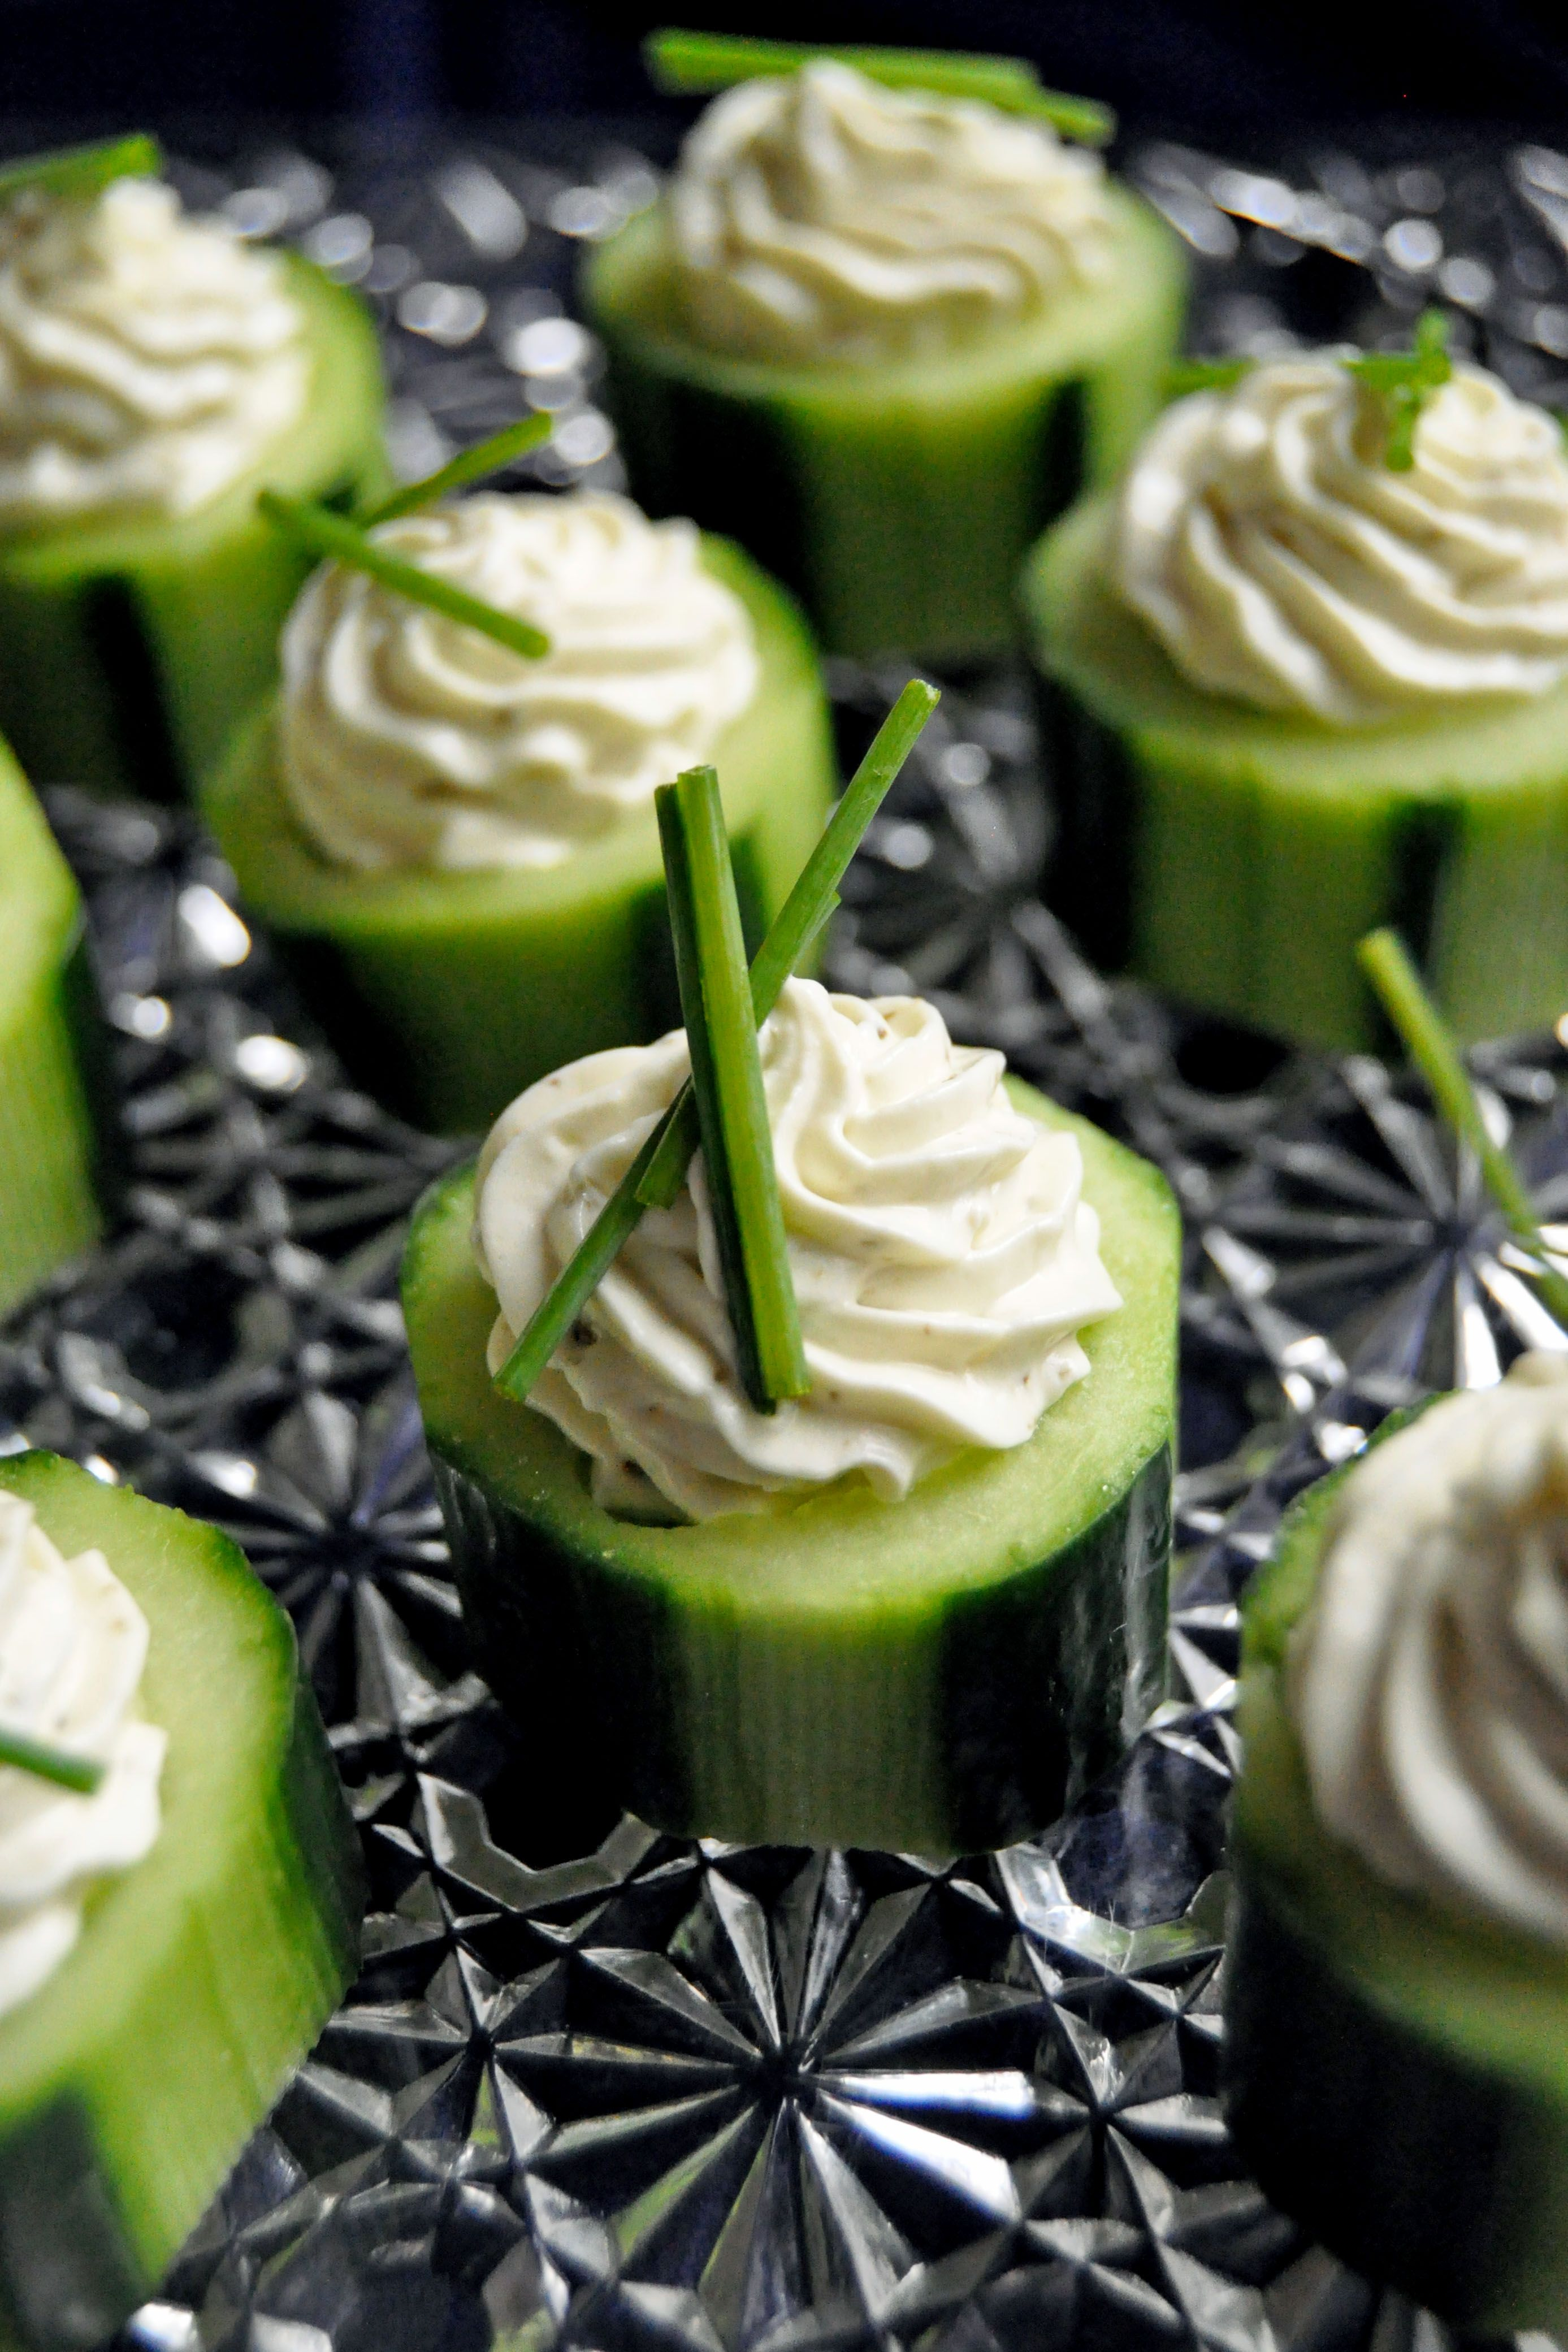 Do it yourself cucumber appetizers perfect for a ladies tea do it yourself cucumber appetizers perfect for a ladies tea party wedding shower http solutioingenieria Images